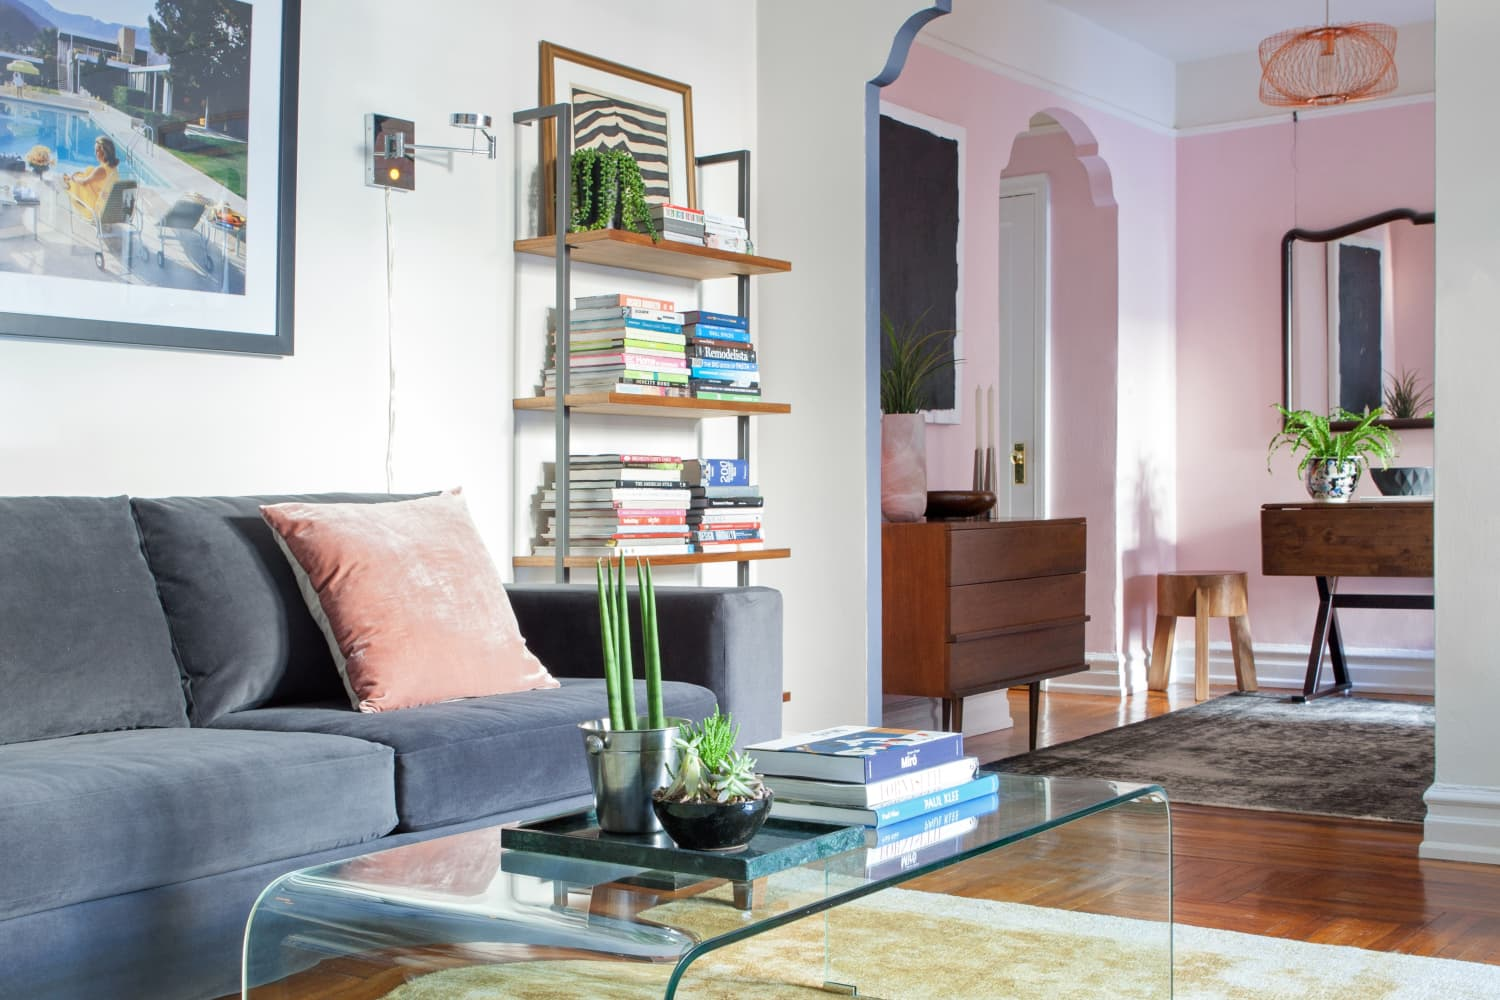 9 Things You Probably Didn't Know You Could Repurpose, According to Interior Designers